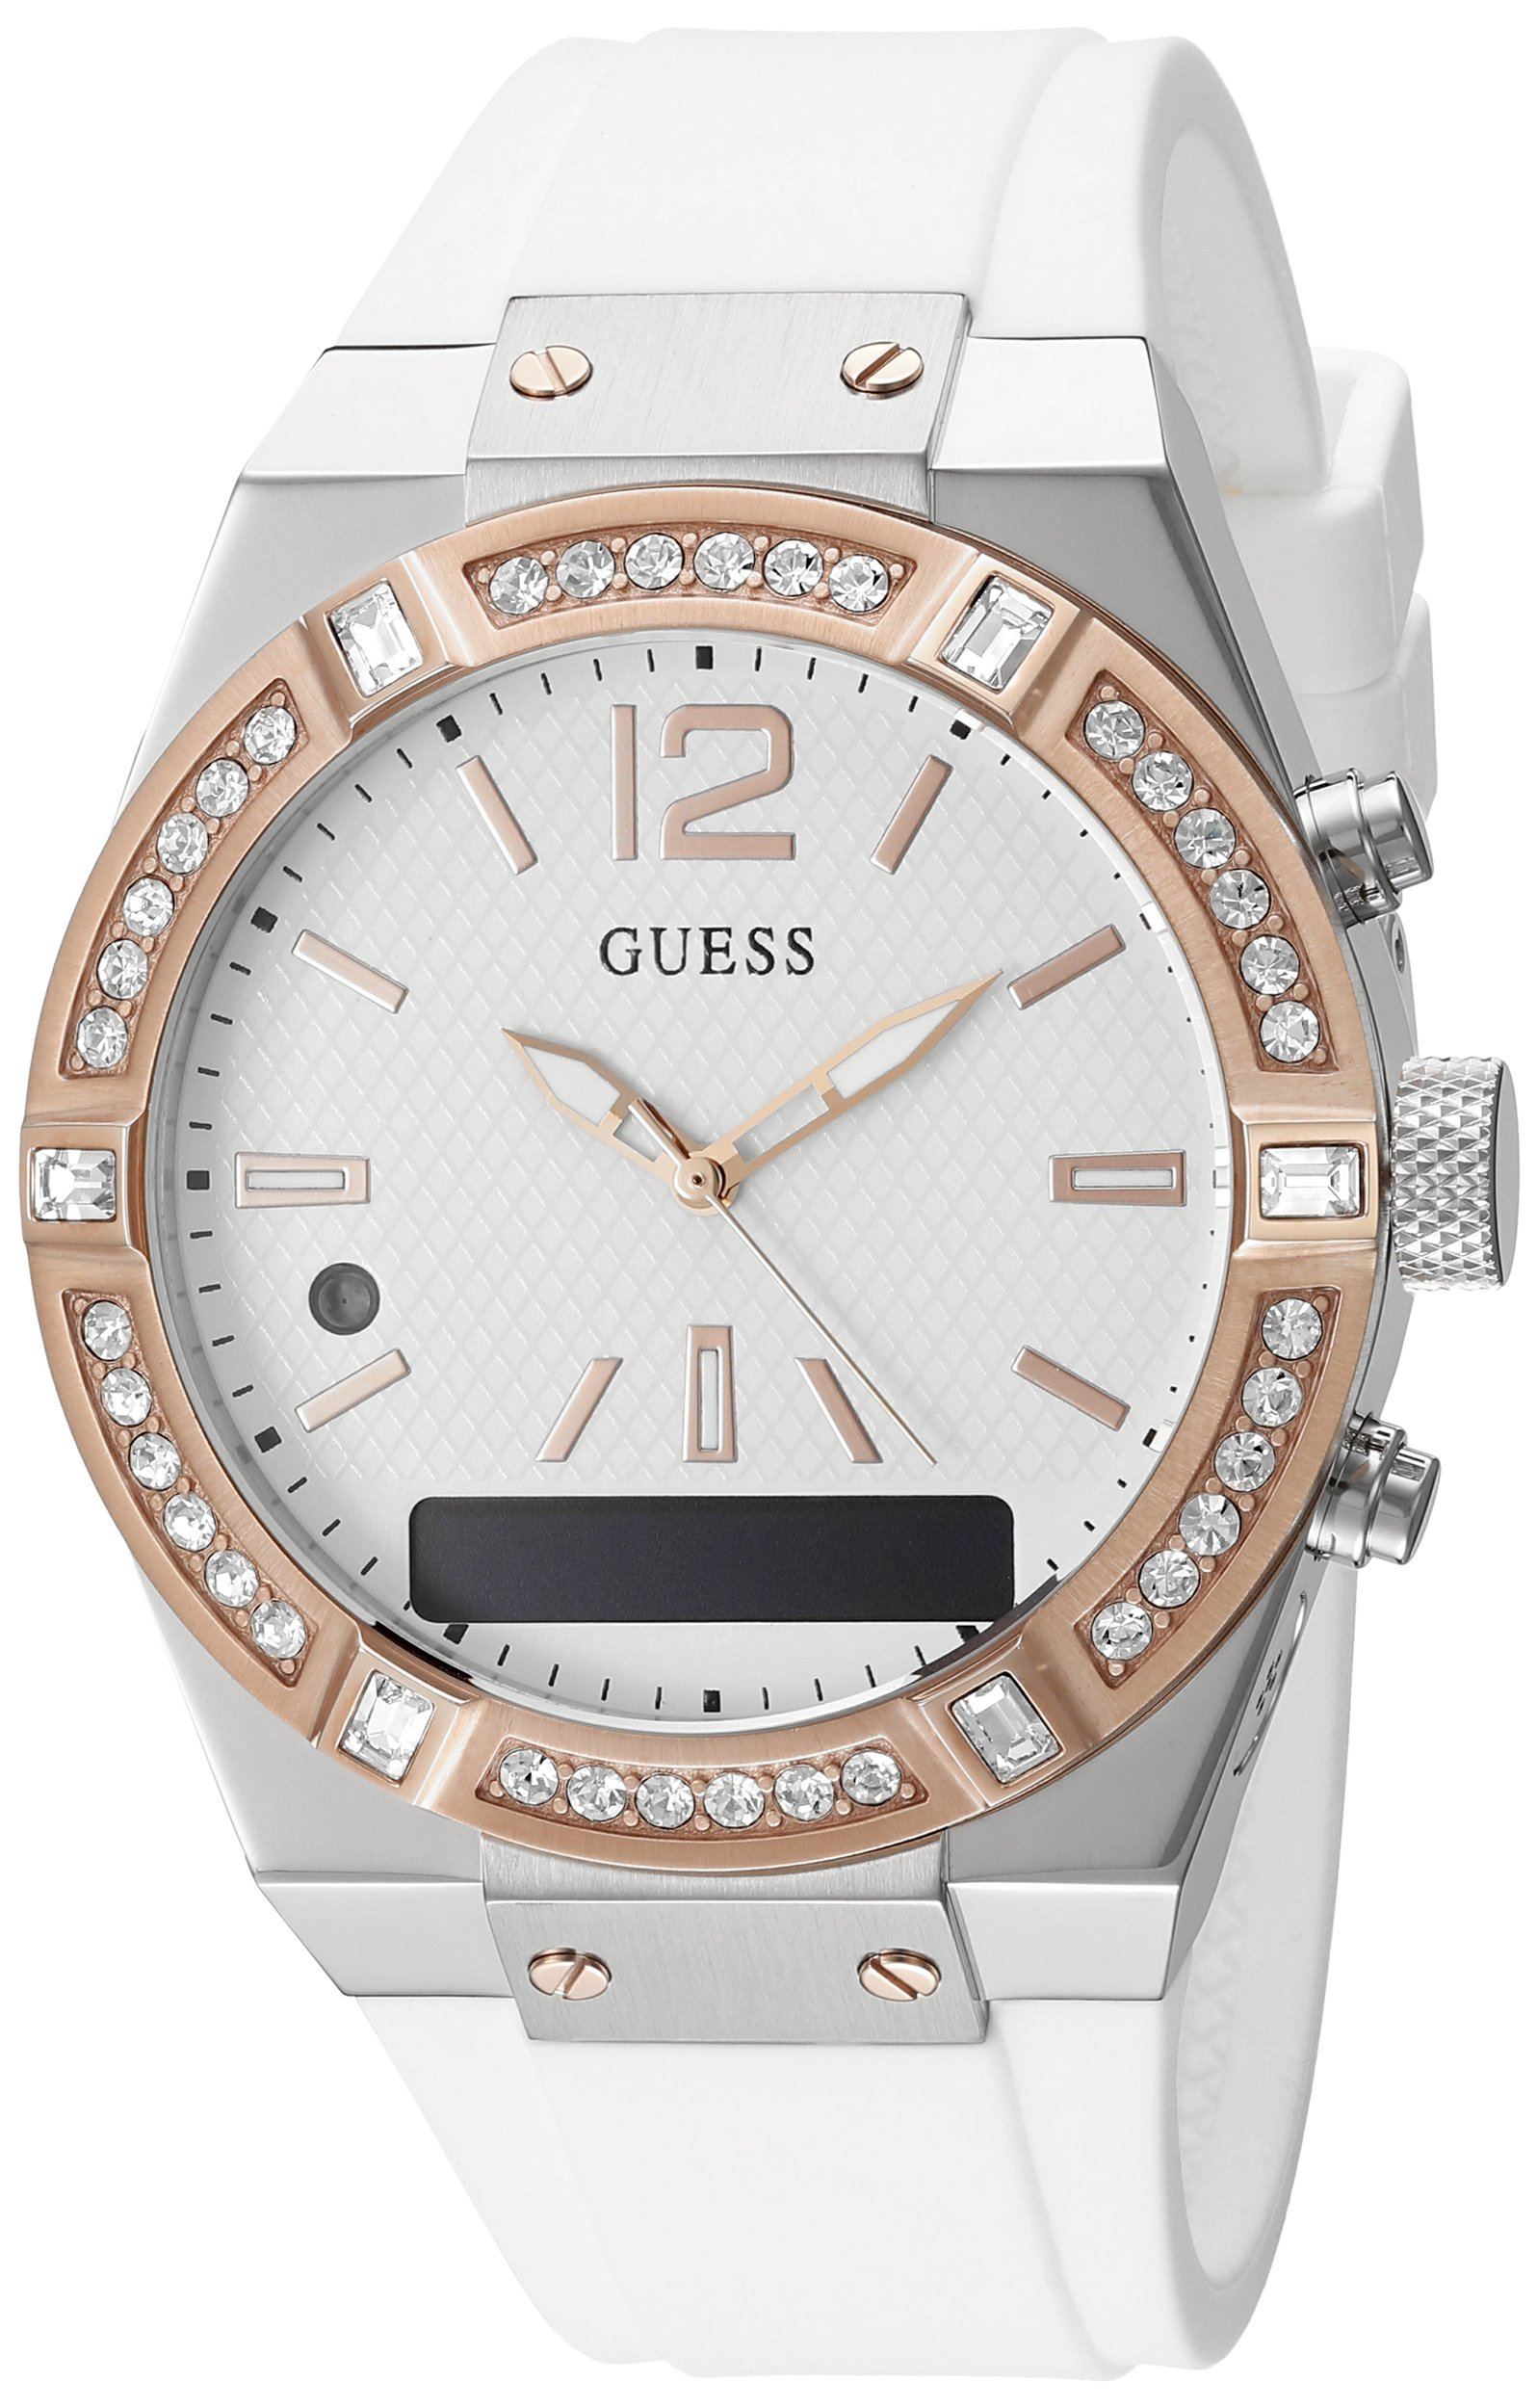 GUESS Women's CONNECT Smartwatch with Amazon Alexa and Silicone Strap Buckle - iOS and Android Compatible - White by GUESS